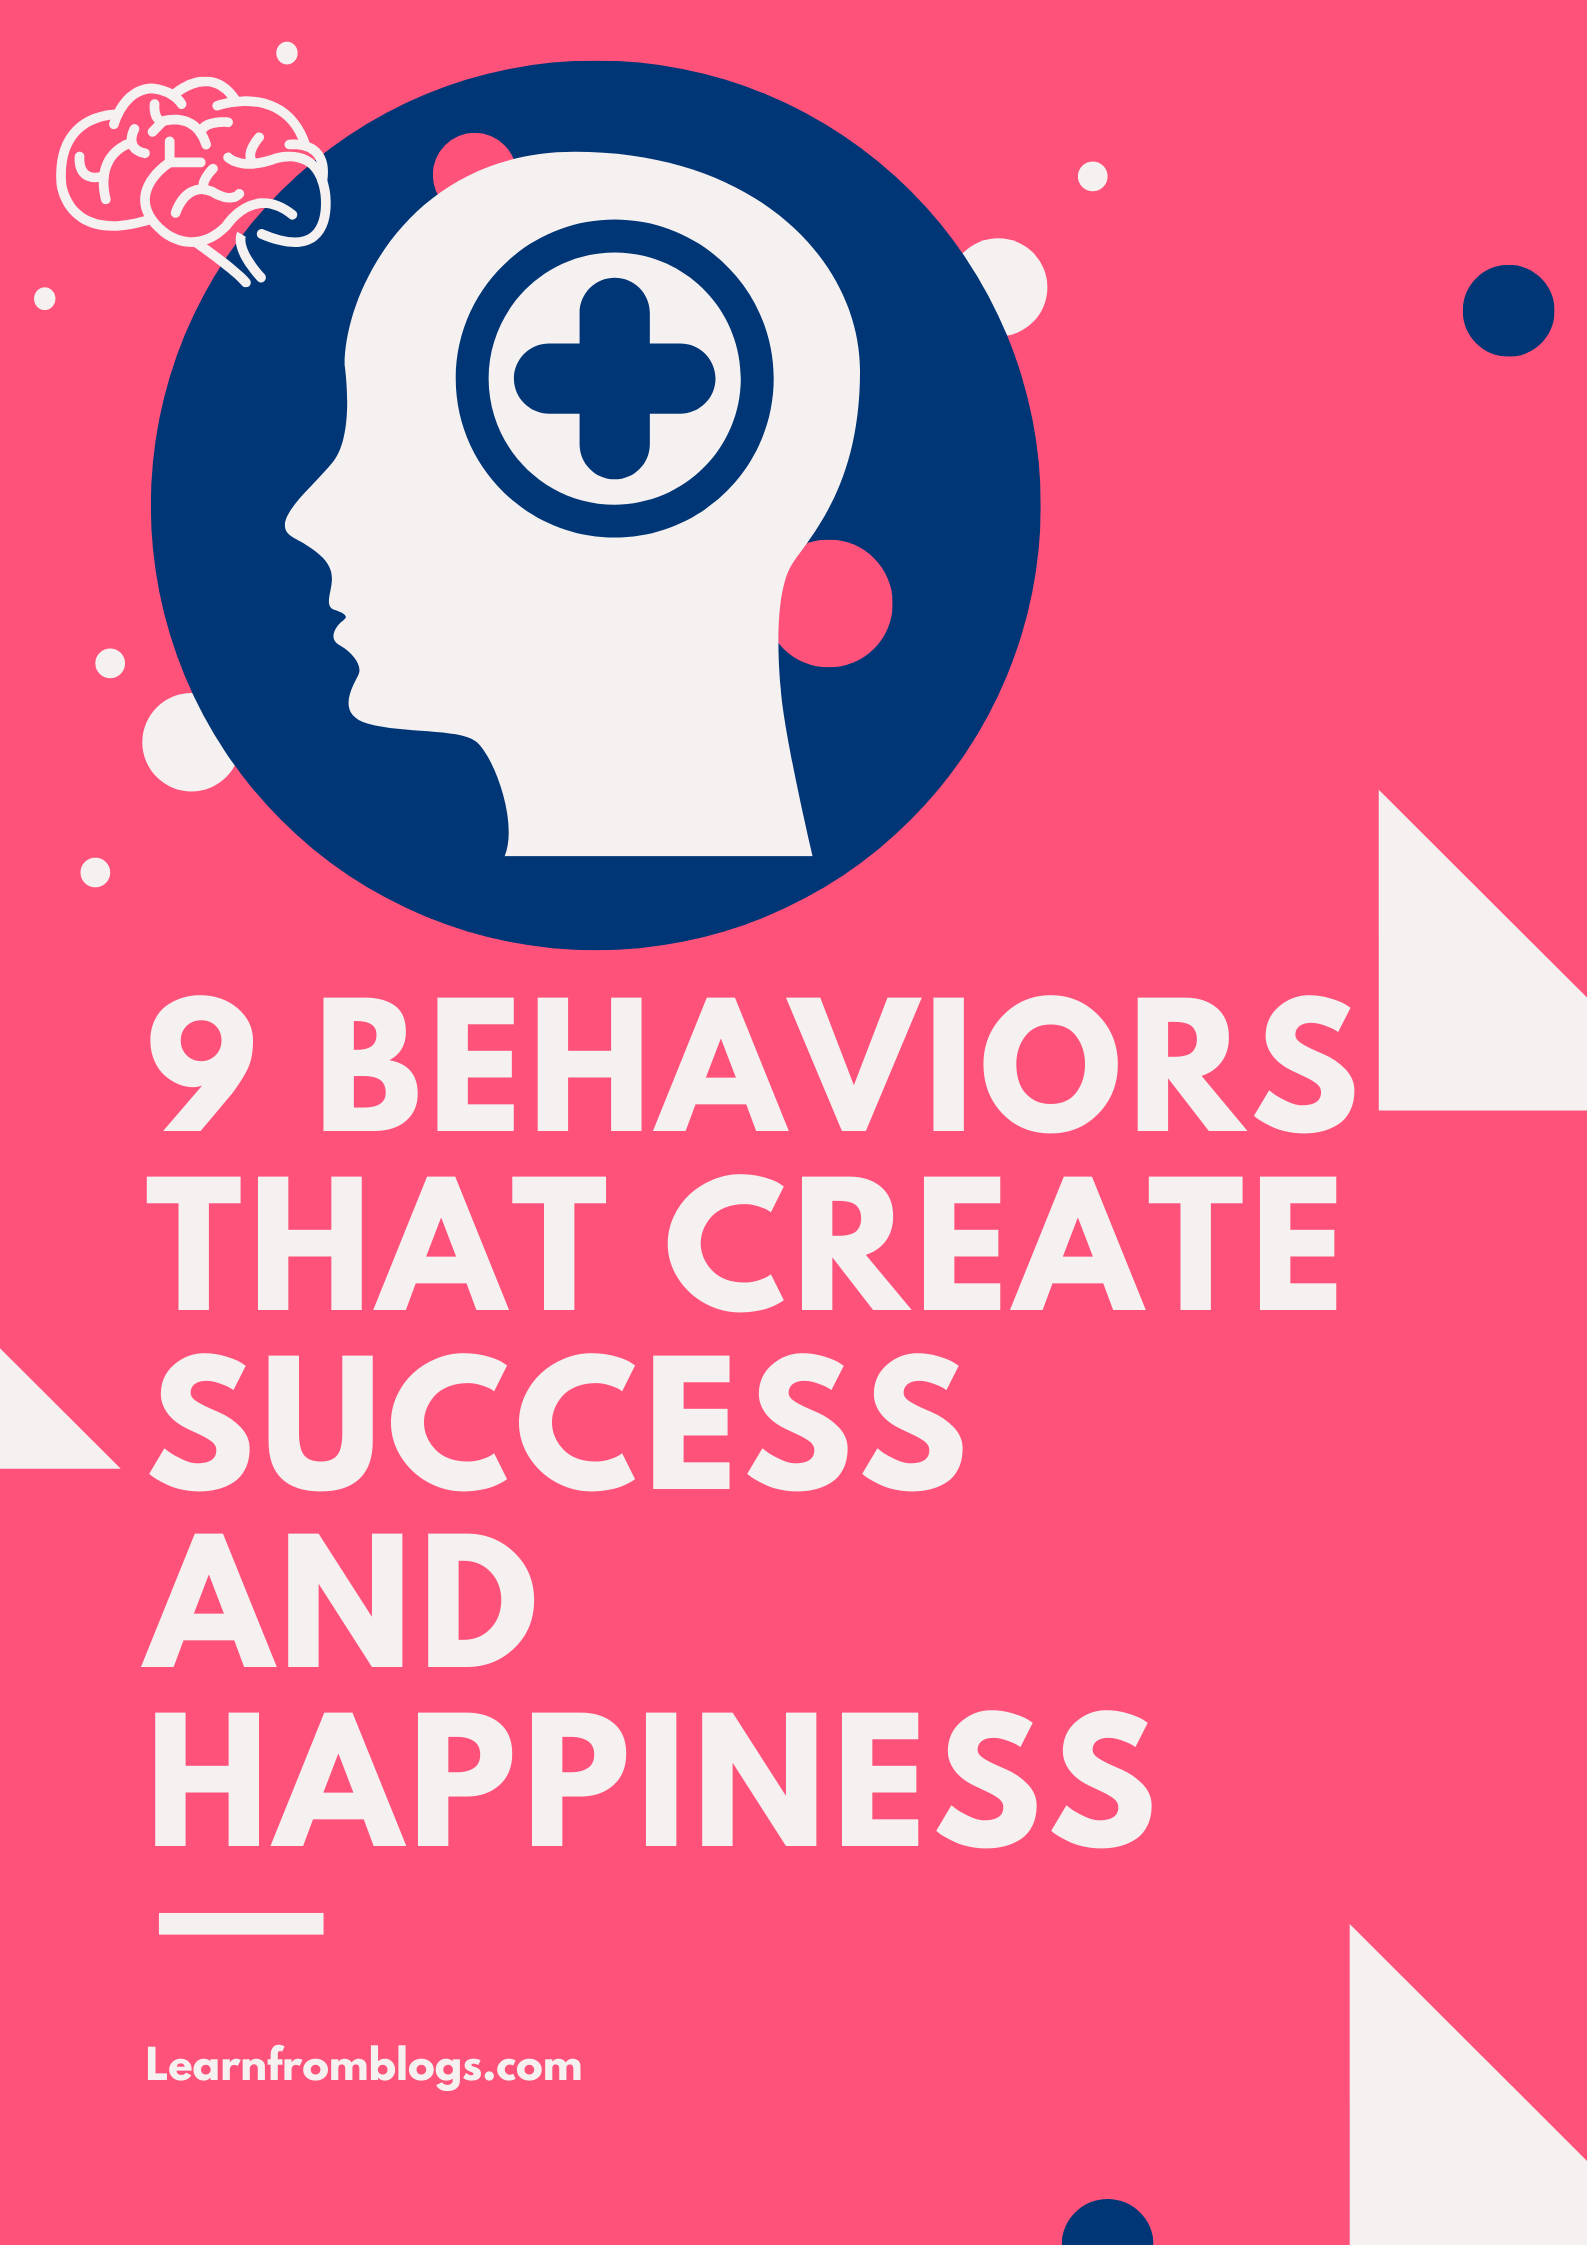 9 Behaviors That Create Success And Happiness.png